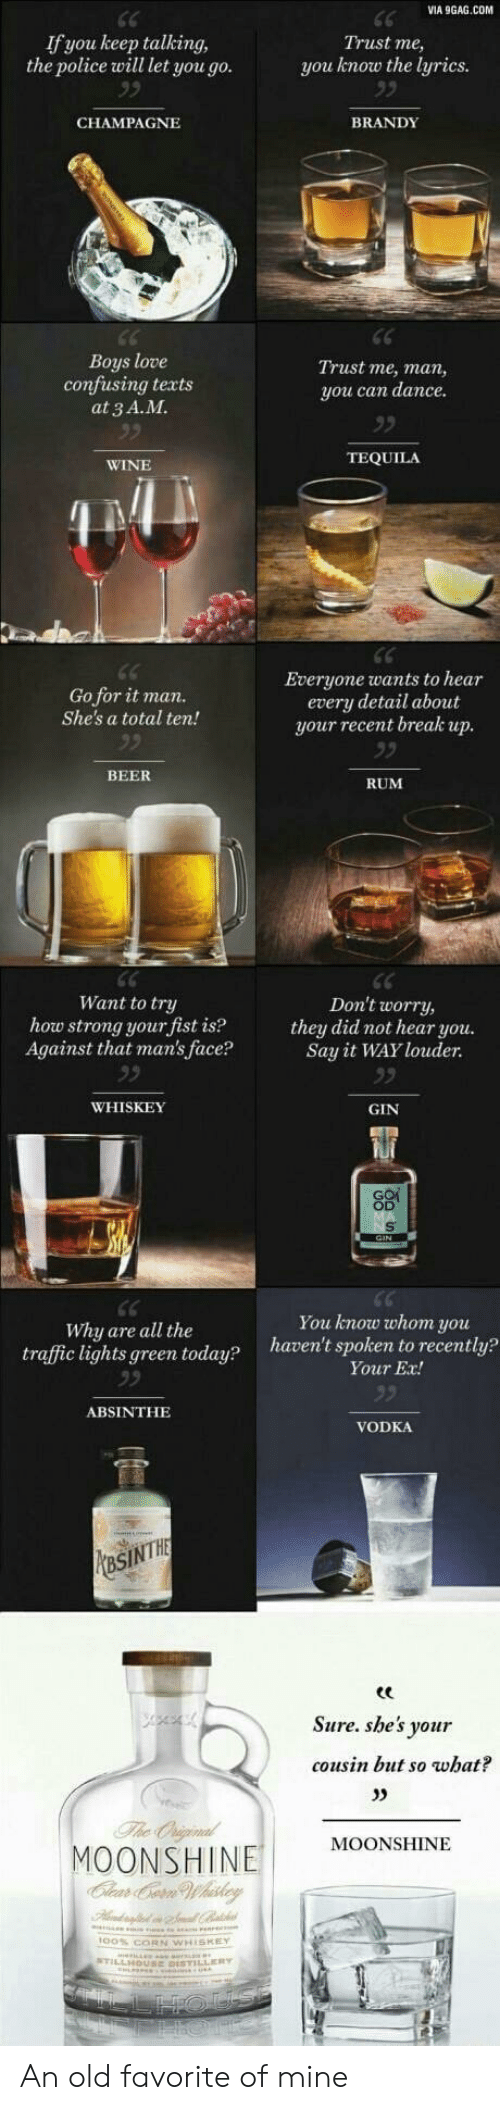 gin: VIA 9GAG.COM  If you keep talking,  the police will let you go.  Trust me,  you know the lyrics  BRANDY  CHAMPAGNE  Boys love  confusing texts  at 3 A.M  Trust me, man,  you can dance.  TEQUILA  WINE  Everyone wants to hear  every detail about  your recent break up.  Go for it man.  She's a total ten!  92  BEER  RUM  Want to try  how strong your fist is?  Against that man's face?  Don't worry,  they did not hear you.  Say it WAY louder.  WHISKEY  GIN  You know whom you  haven't spoken to recently?  Why are all the  traffic lights green today?  Your Ex!  ABSINTHE  VODKA  PMasINTHE  Sure. she's your  cousin but so what?  The Oniginal  MOONSHINE  Clear Cern Whiskey  MOONSHINE An old favorite of mine